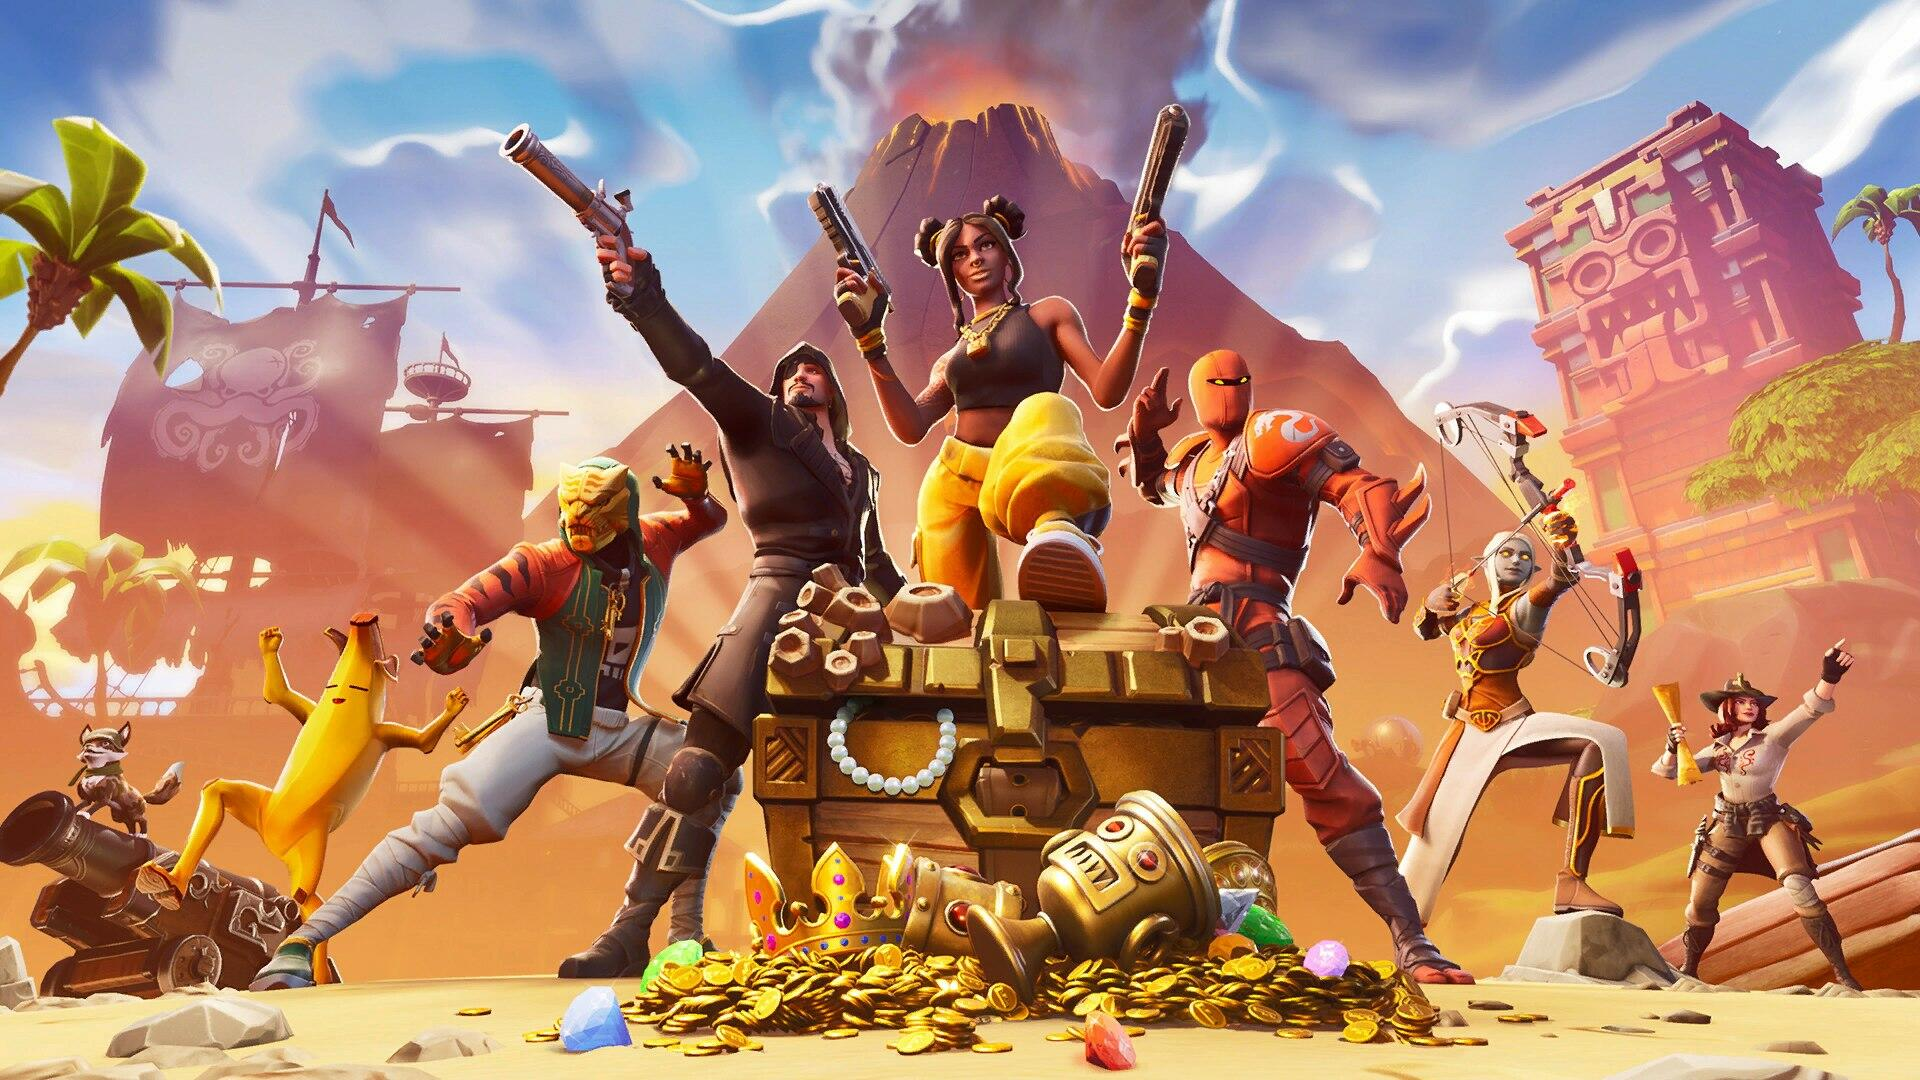 """Report: Fortnite Developers Say They Regularly Crunch """"70-Hour Weeks"""""""